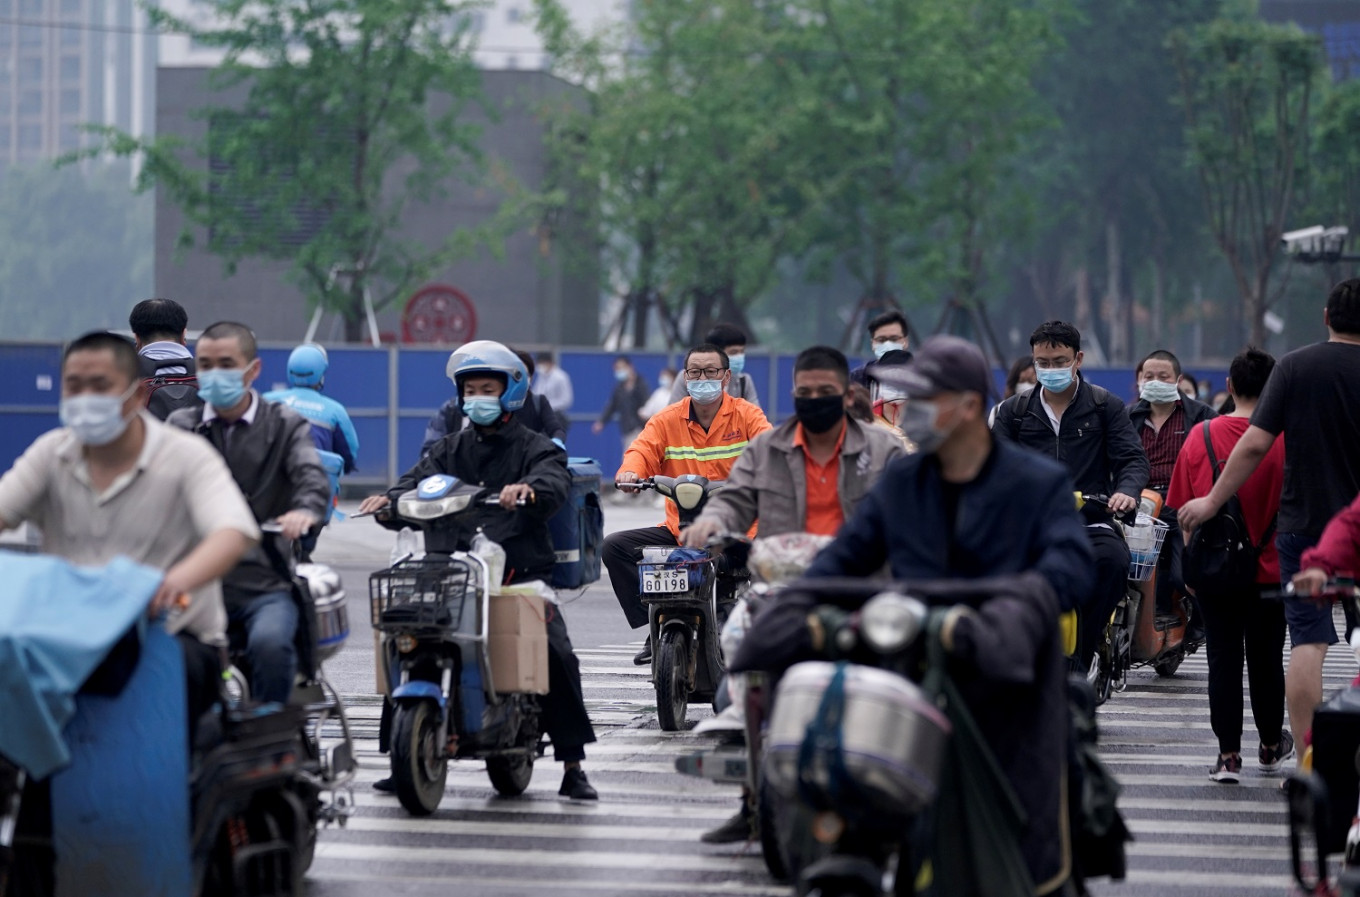 China sees post-lockdown rise in air pollution: Study